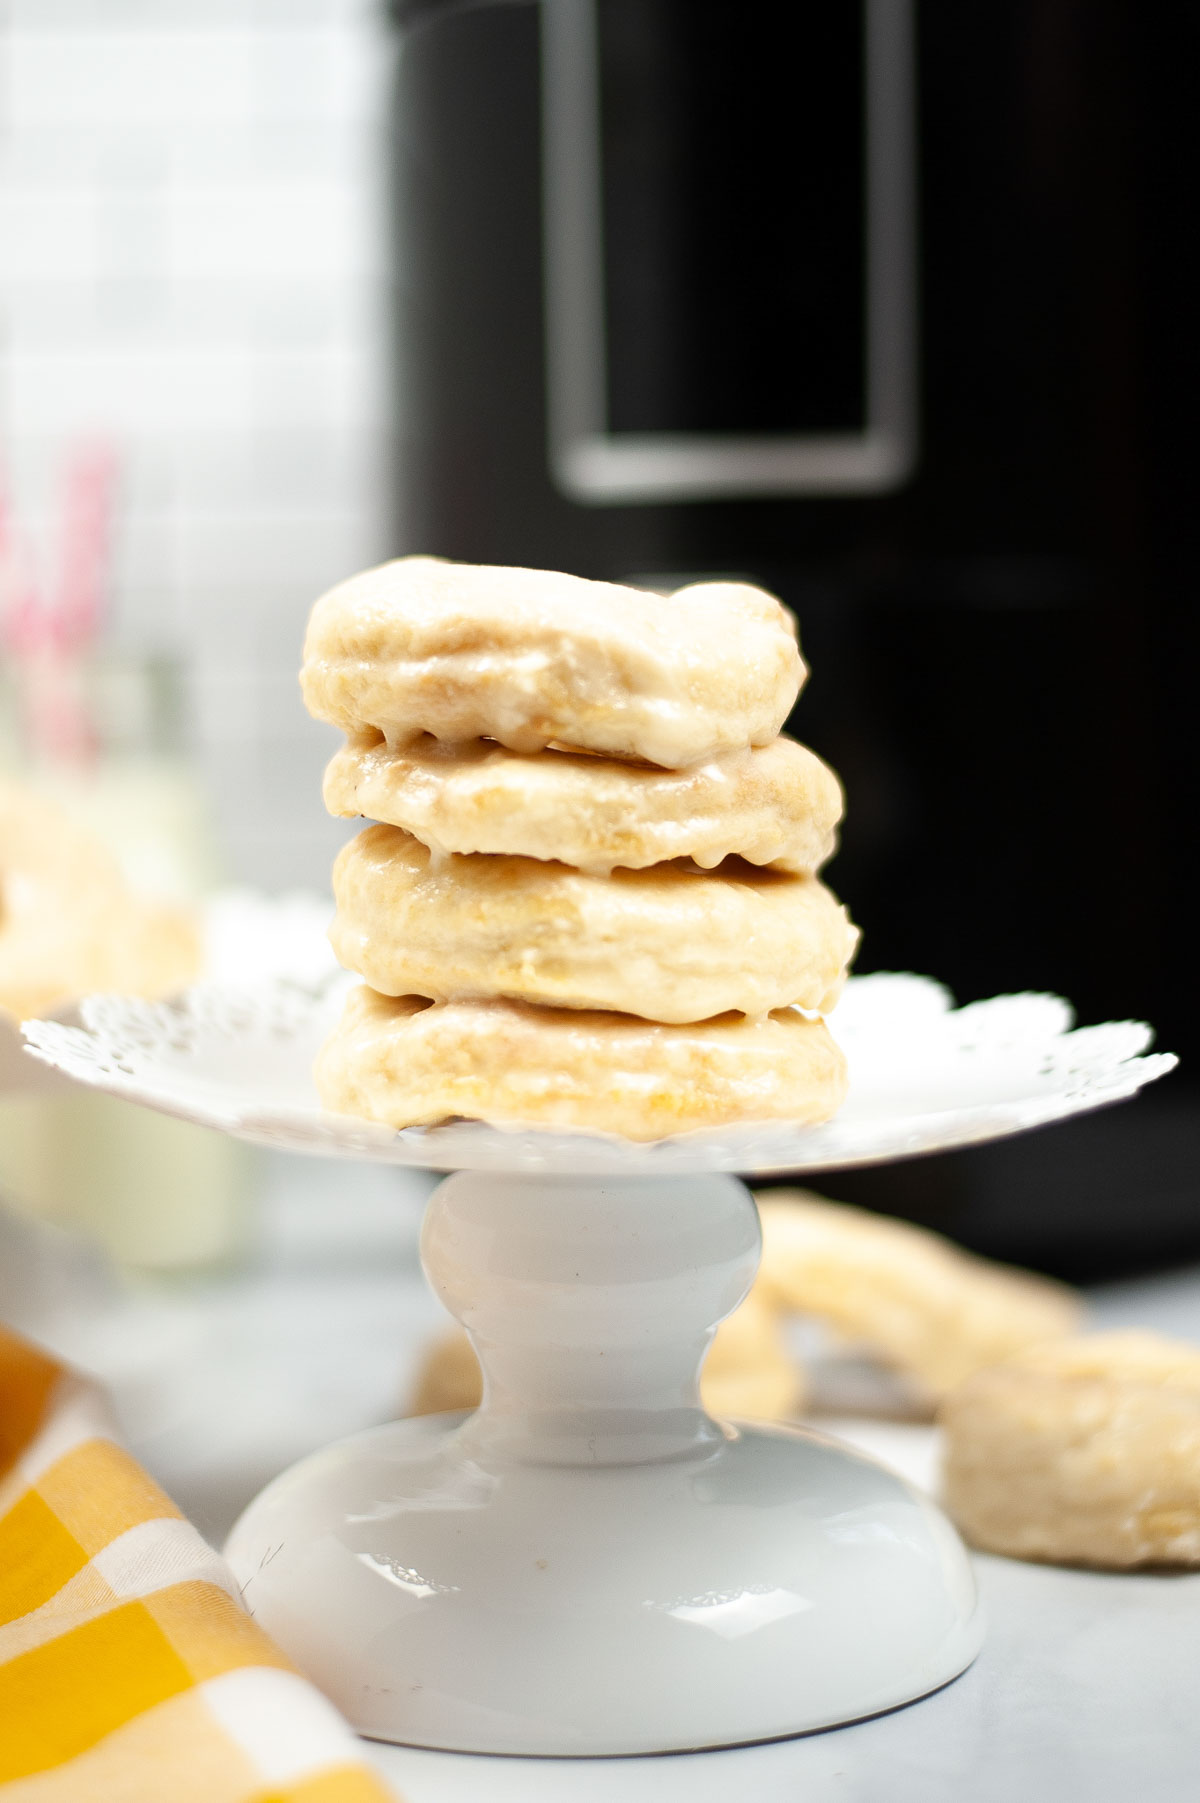 stacked air fryer donuts on a cake stand with air fryer behind it.